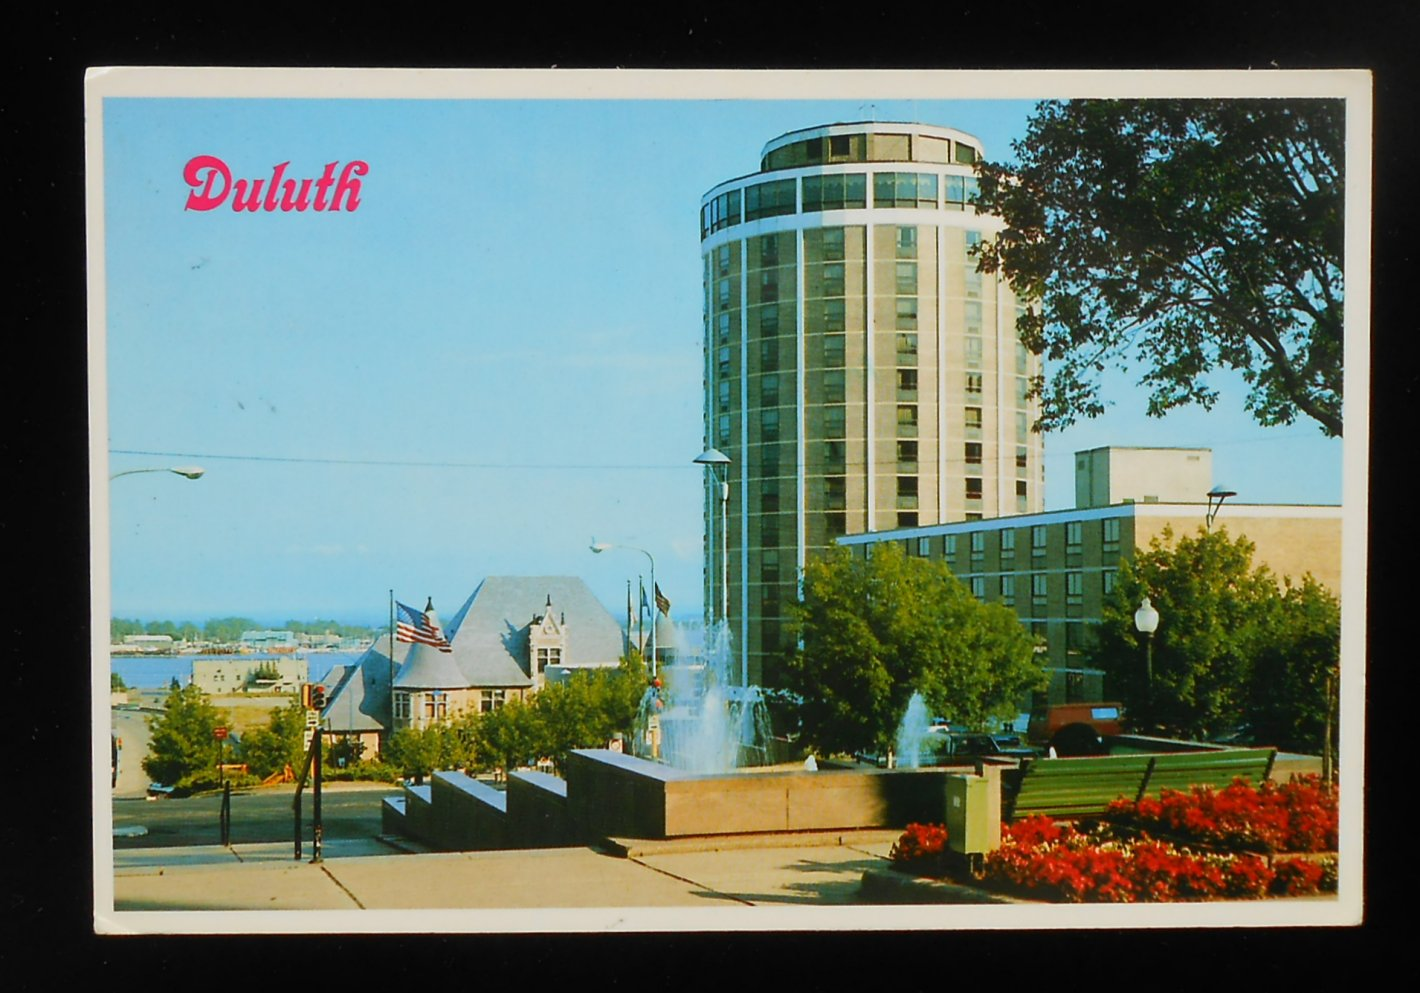 1984 radisson duluth hotel duluth mn st louis co postcard. Black Bedroom Furniture Sets. Home Design Ideas